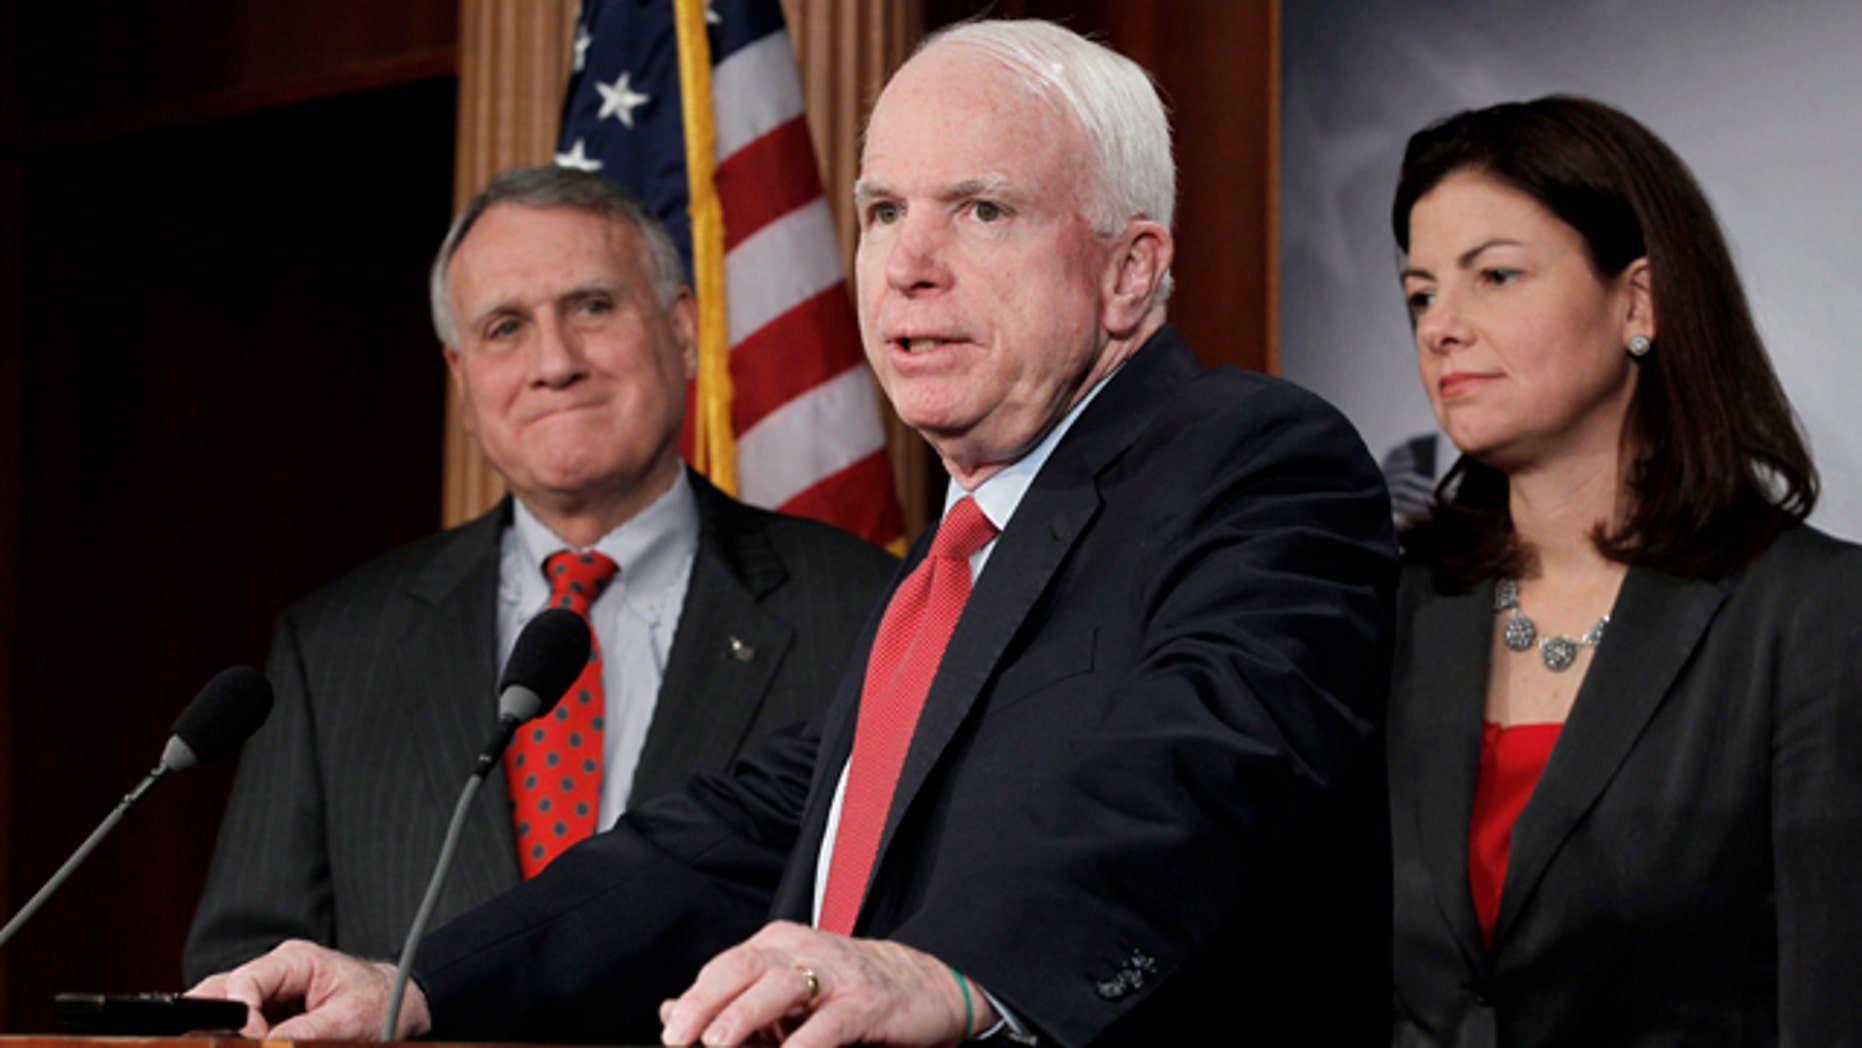 Dec. 14, 2011: Sen. John McCain, R-Ariz., ranking Republican on the Senate Armed Services Committee, center, flanked by Senate Minority Whip Jon Kyl of Ariz., and fellow committee member Sen. Kelly Ayotte, R-N.H., speaks during a news conference on Capitol Hill in Washington to announce an effort to replace the defense sequester mandated as a result of the Supercommittee's failure.